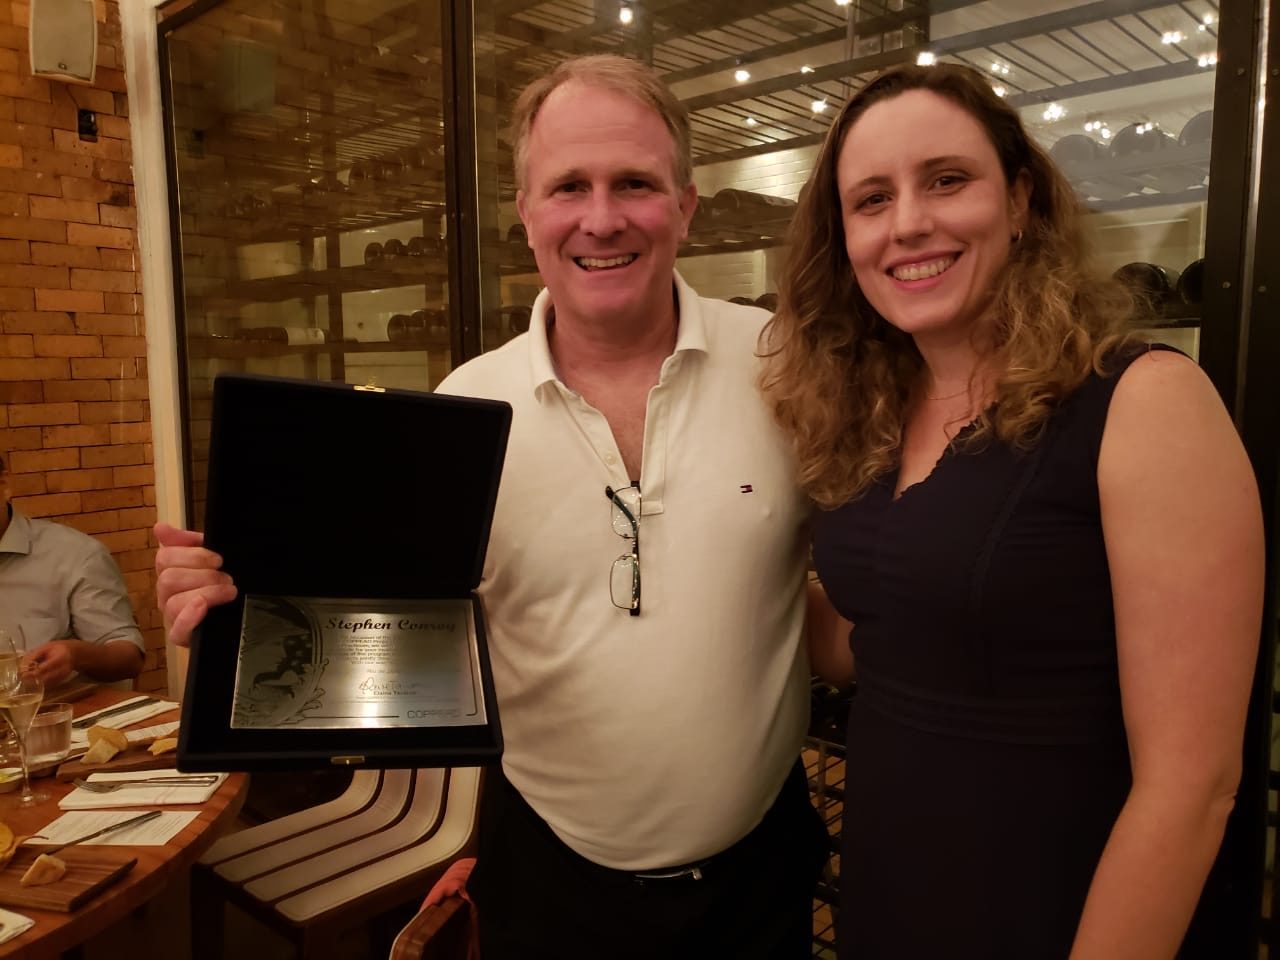 Dr. Stephen Conroy accepts a plaque at COPPEAD in Rio